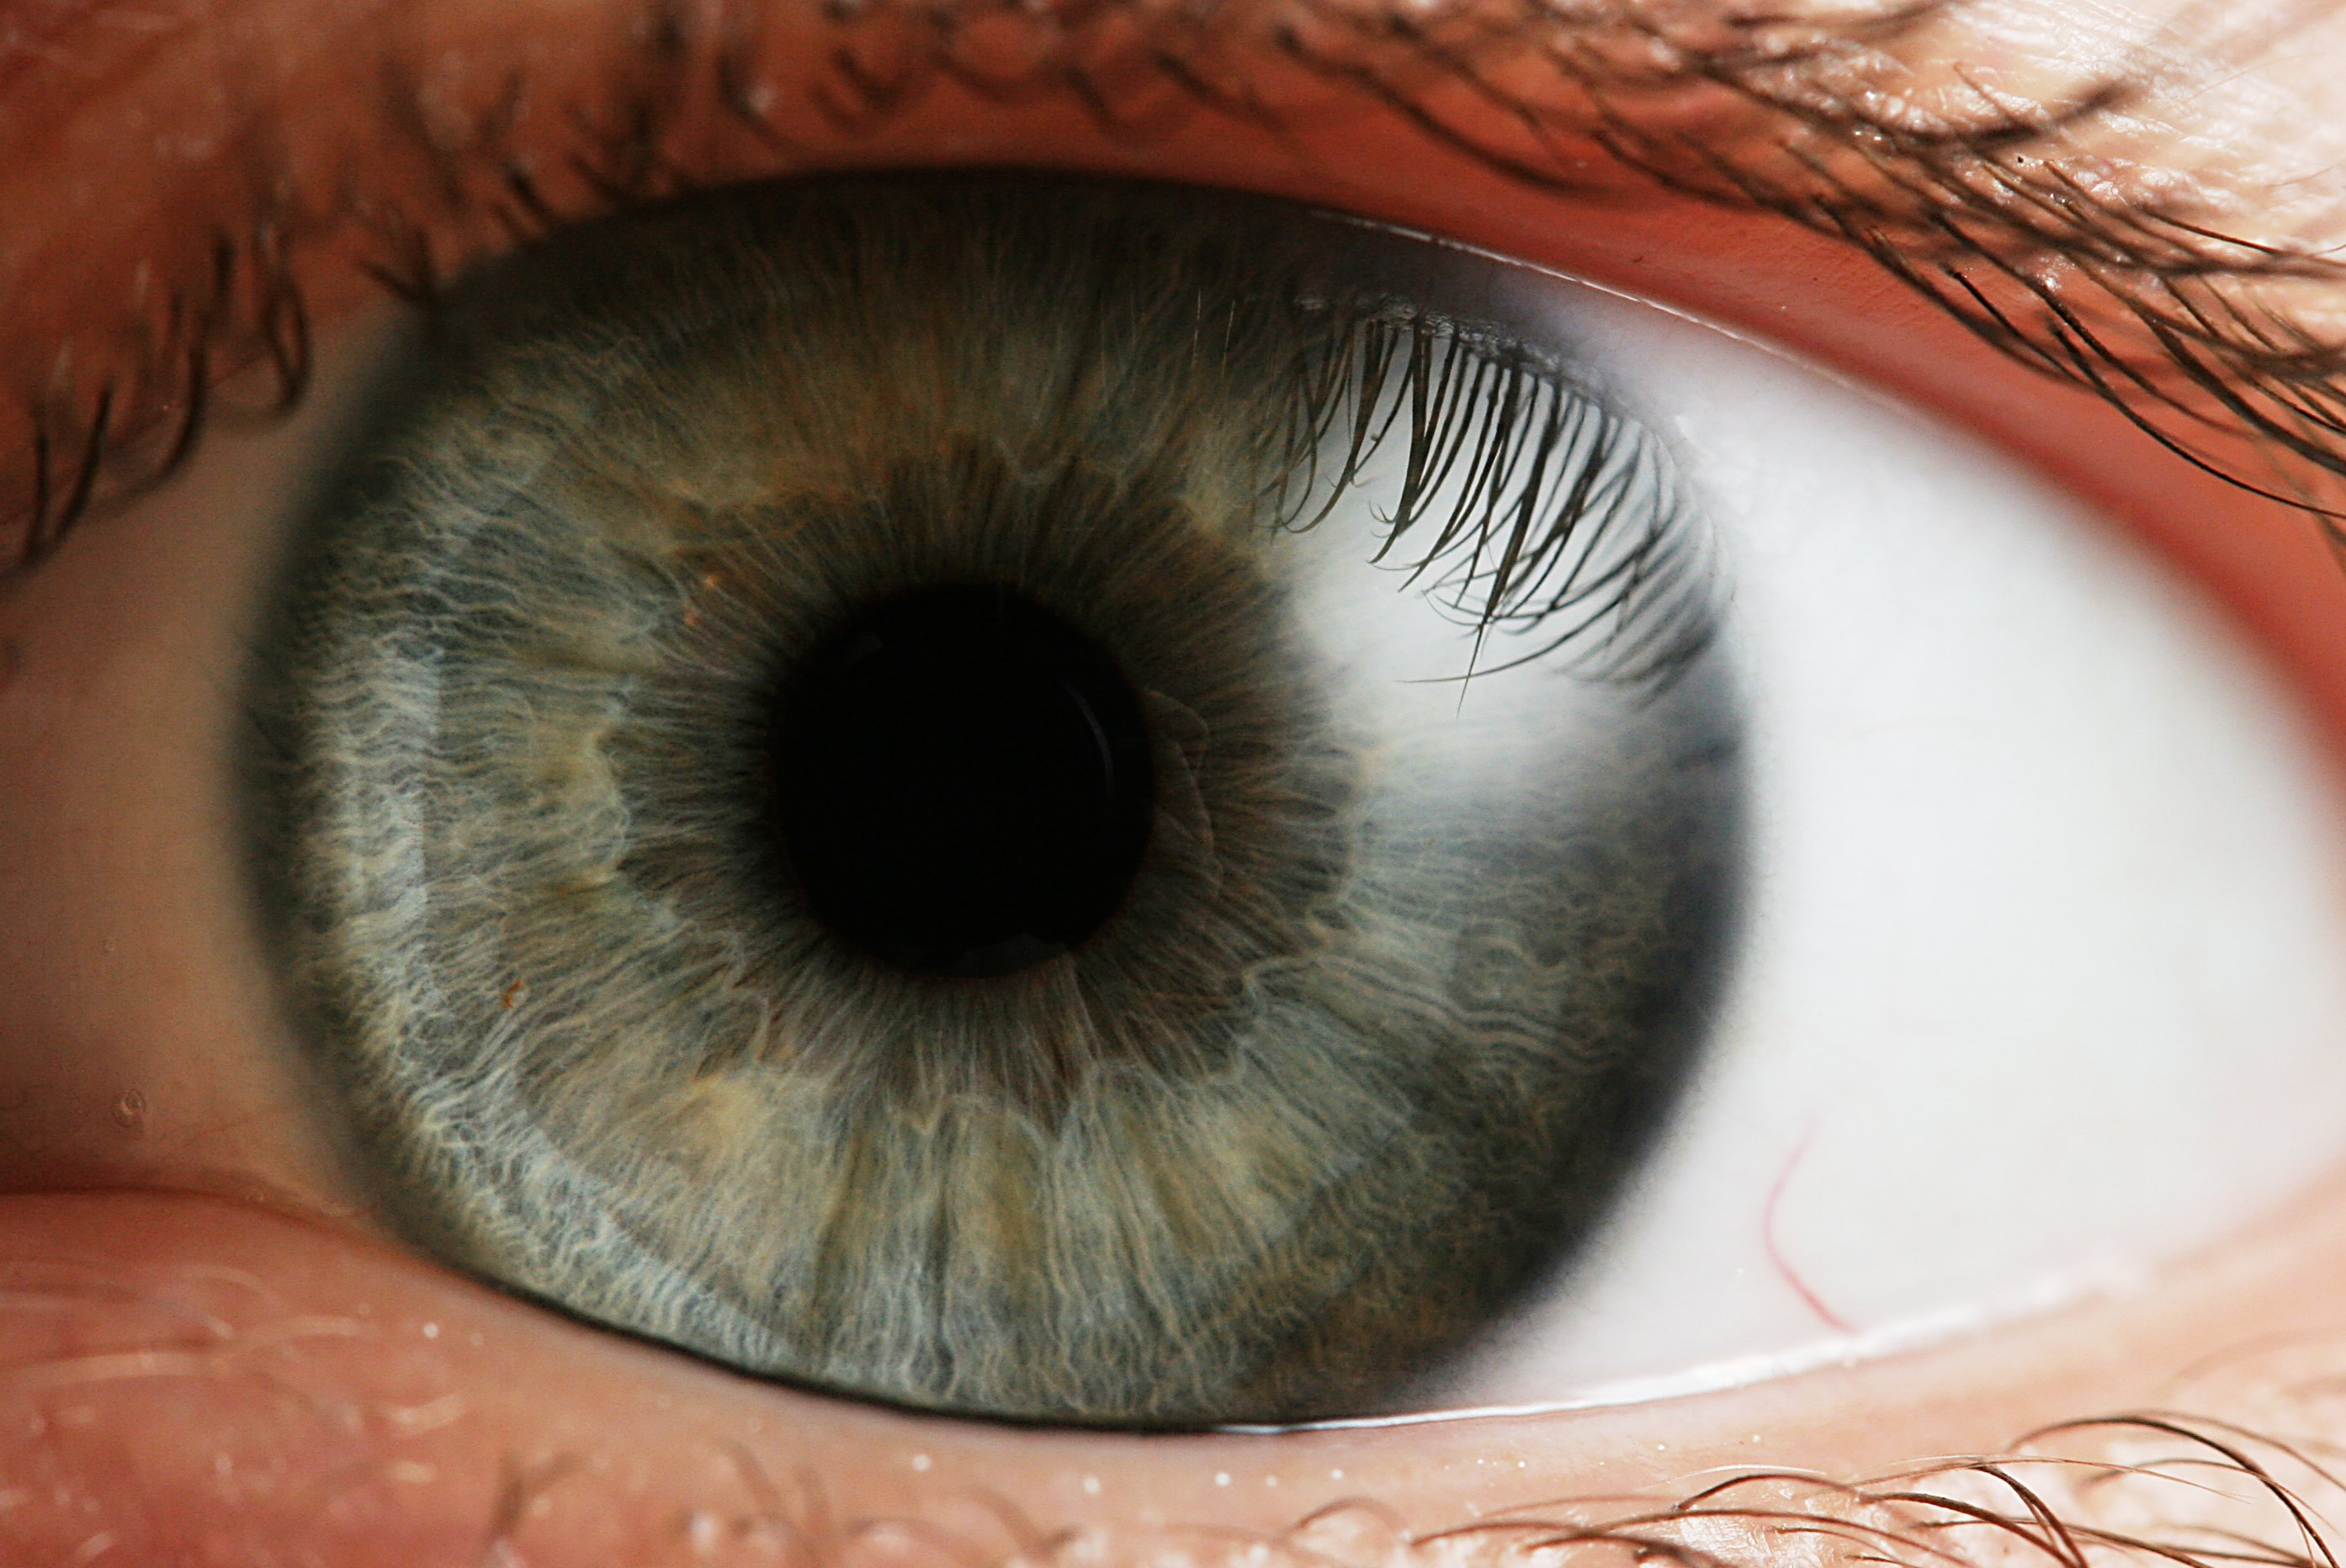 The human eye, showing the iris